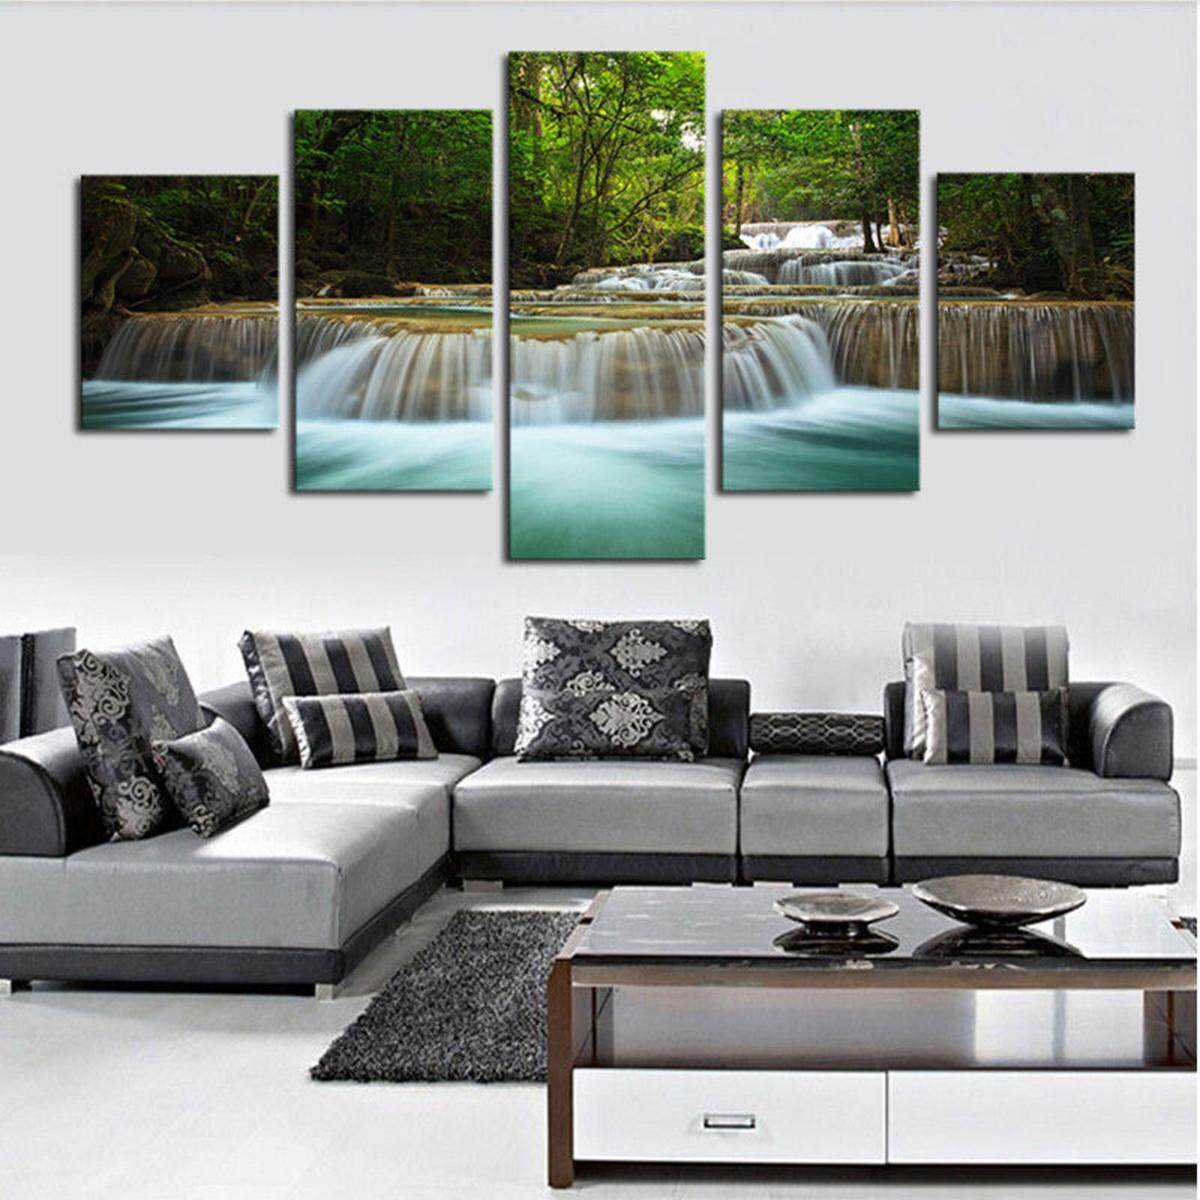 Home Decor Canvas Print Painting Wall Art Modern Waterfall River Forest no frame #30x40x2 30x60x2 30x80